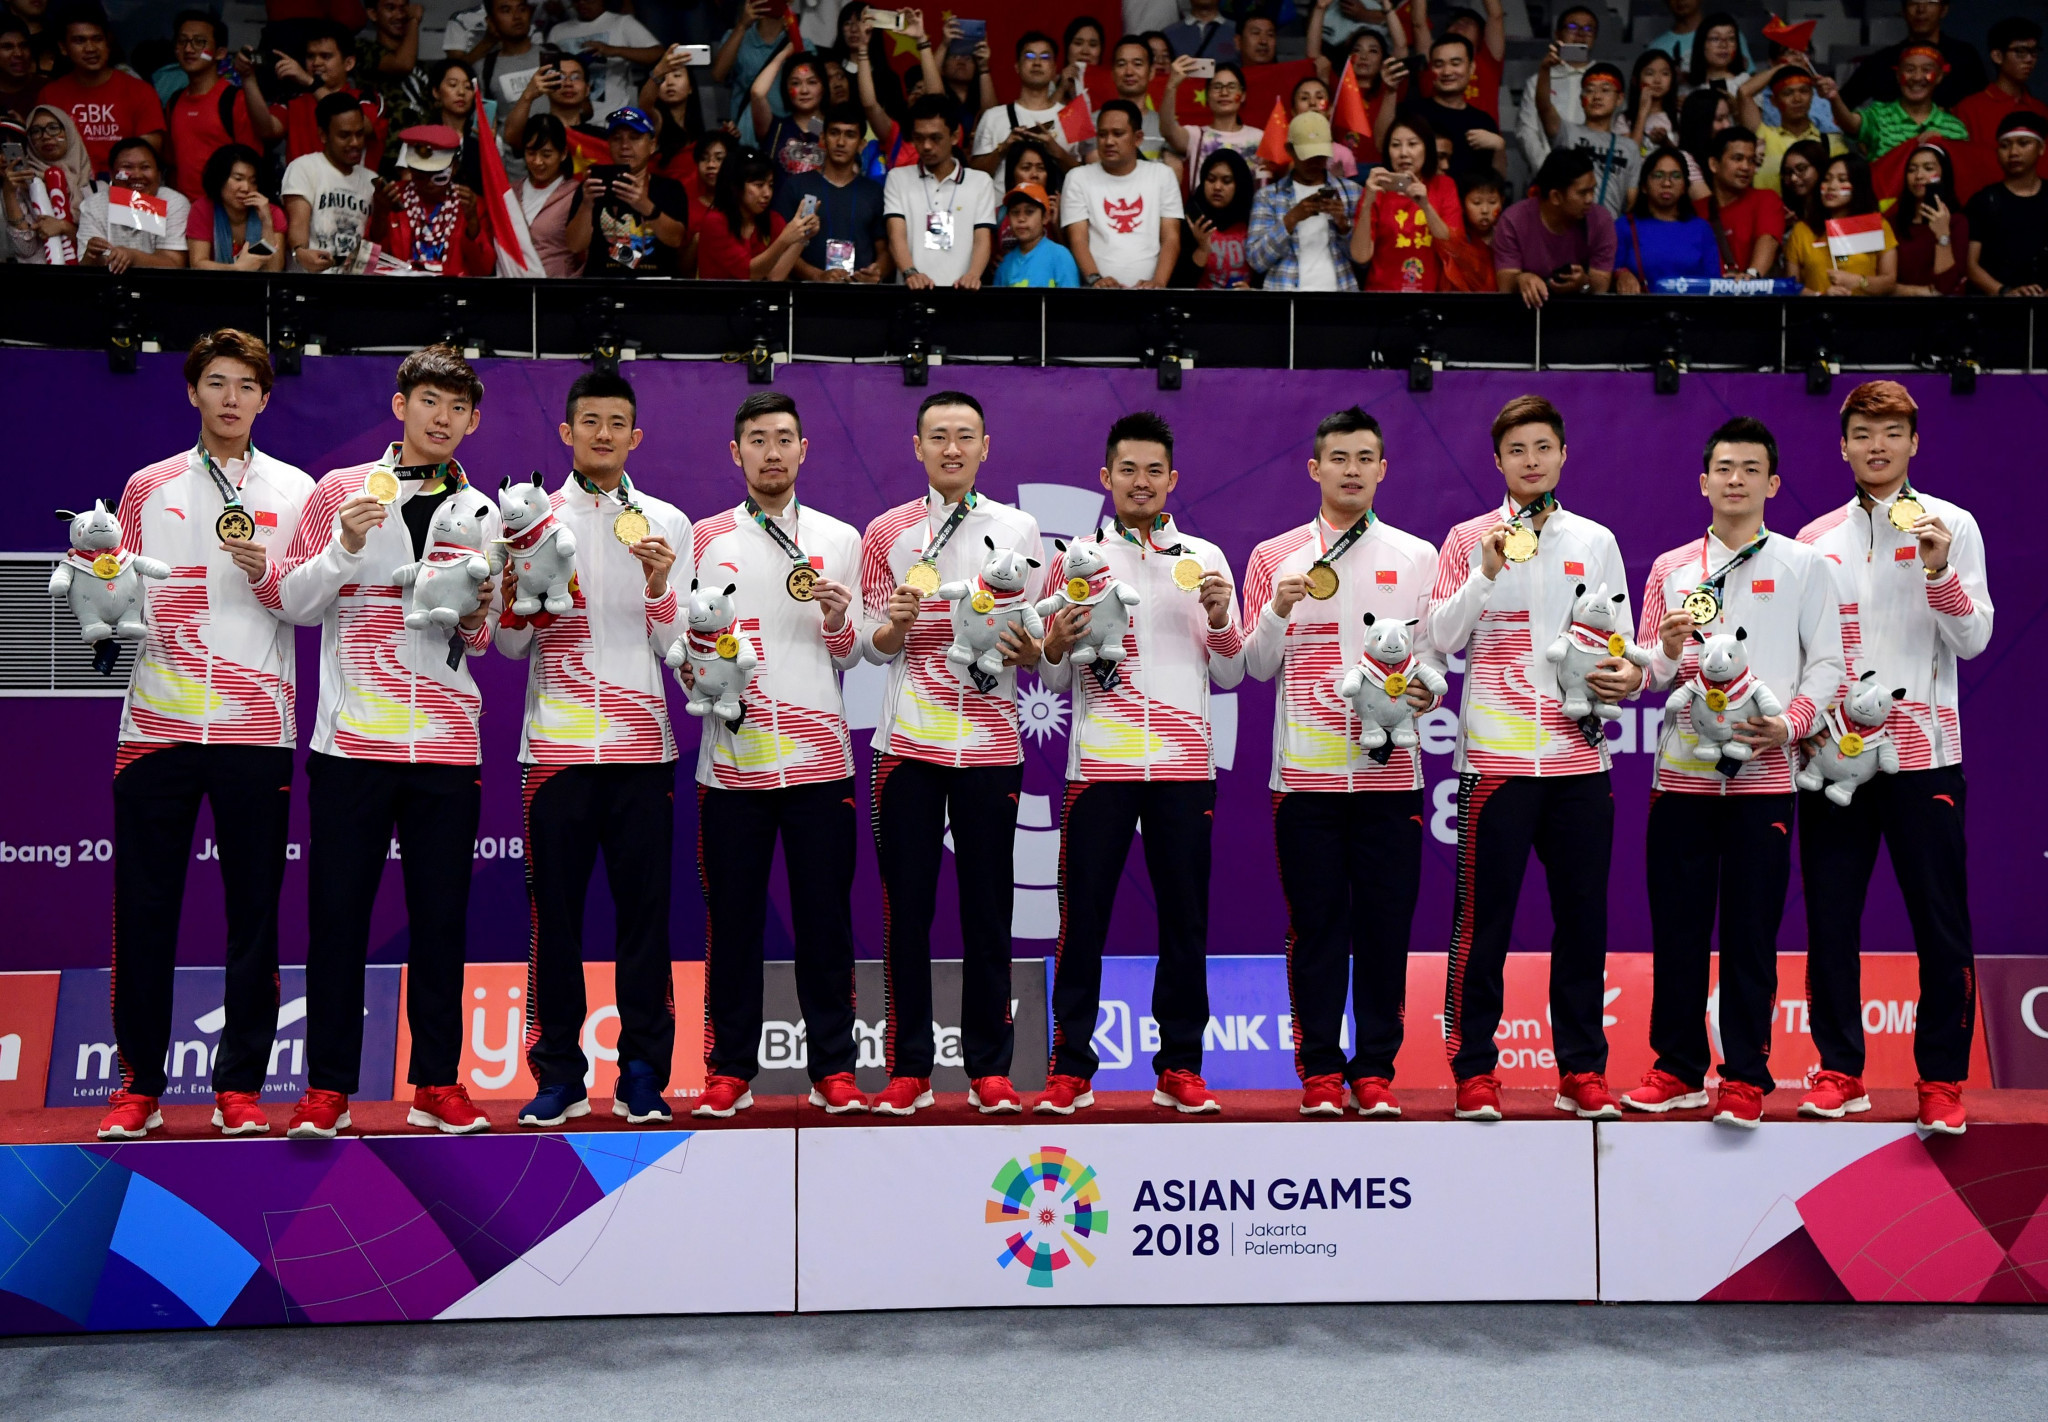 China beat hosts Indonesia in hard-fought men's team badminton final at 2018 Asian Games